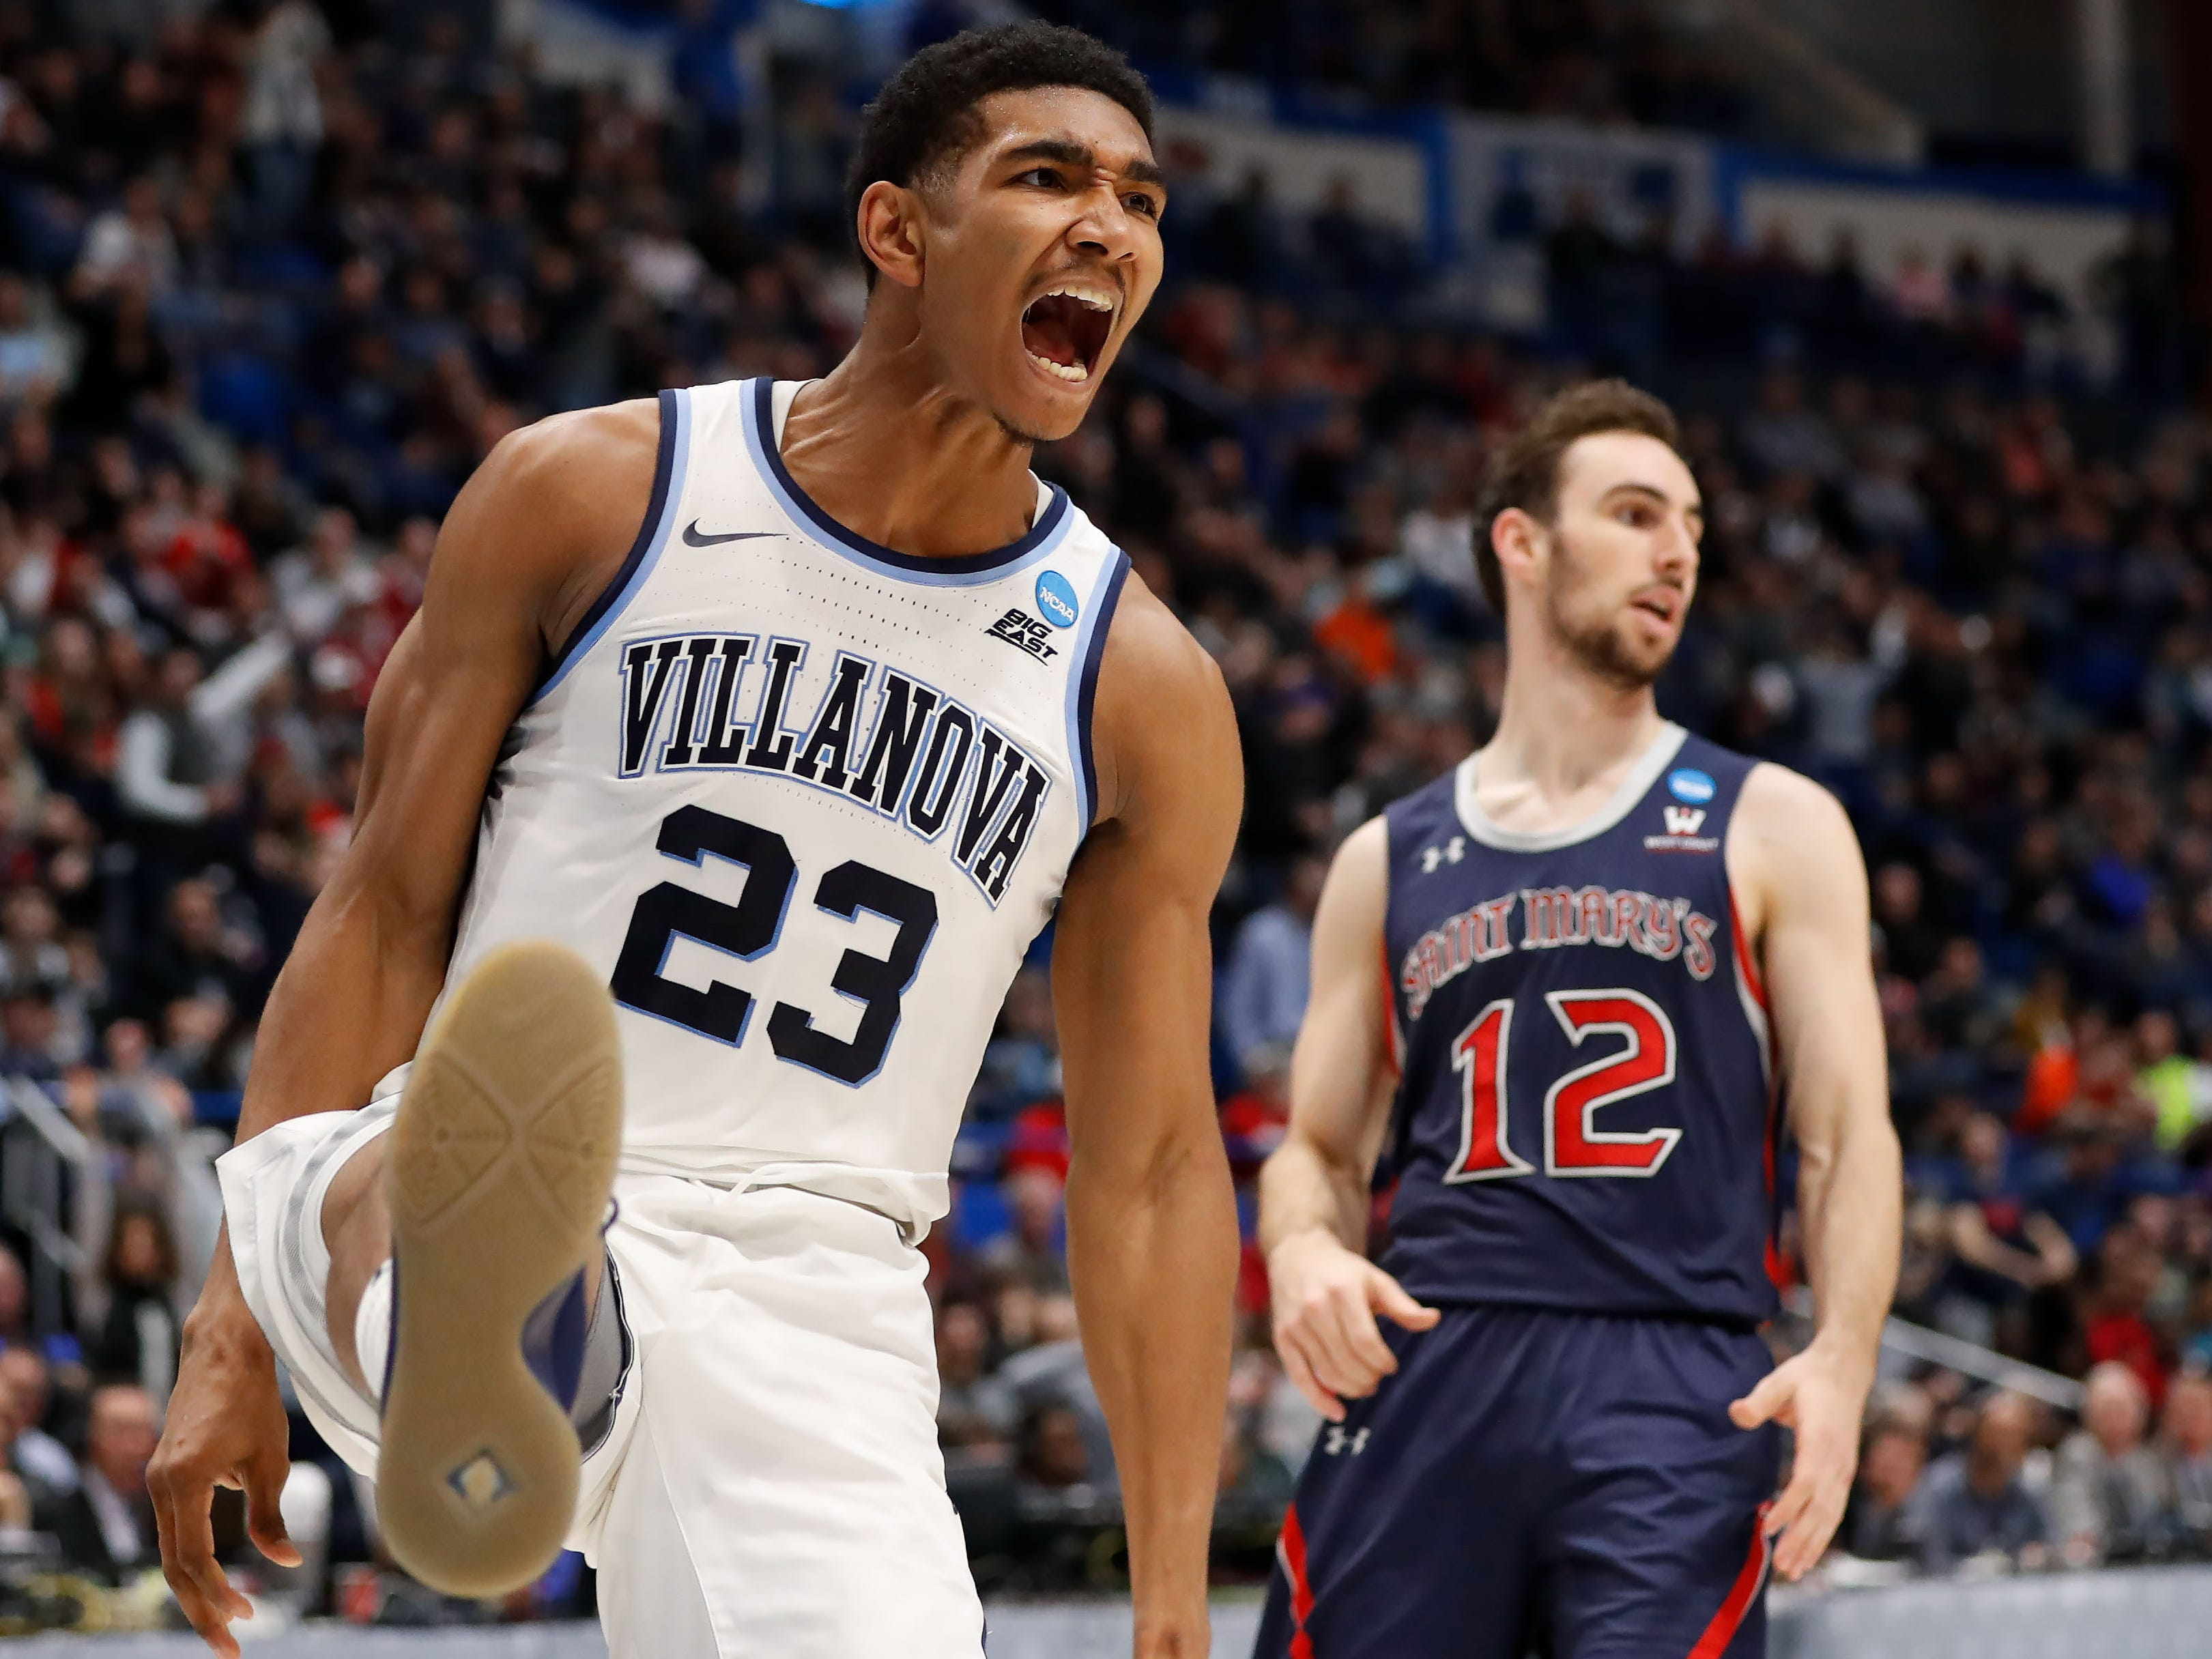 First round: Villanova forward Jermaine Samuels celebrates after scoring against St. Mary's.